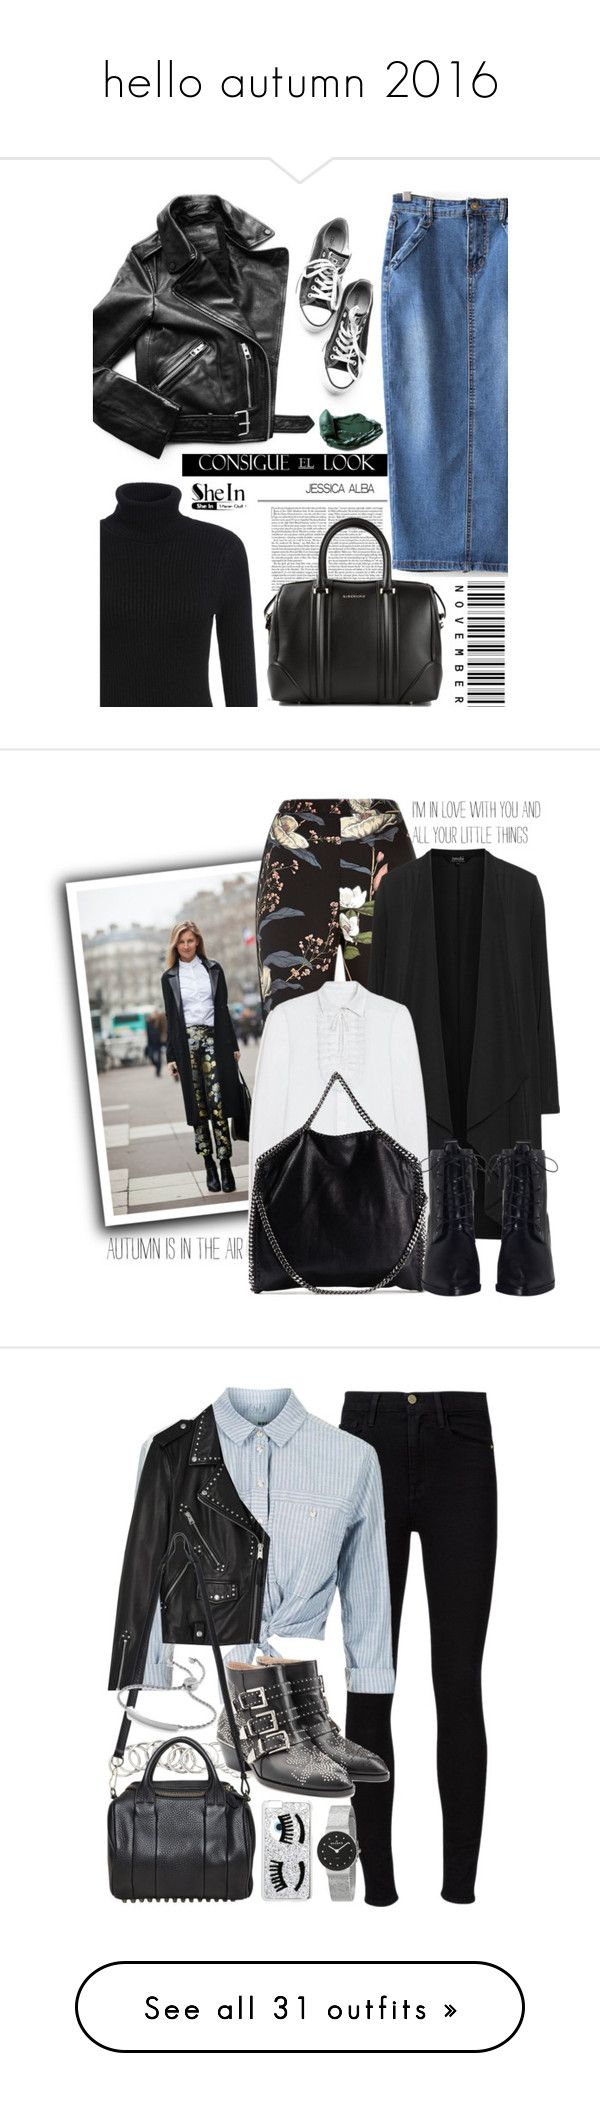 """""""hello autumn 2016"""" by polinachaban ❤ liked on Polyvore featuring Givenchy, Rossetto, River Island, navabi, Mulberry, STELLA McCARTNEY, Zimmermann, Frame Denim, Topshop and AllSaints"""